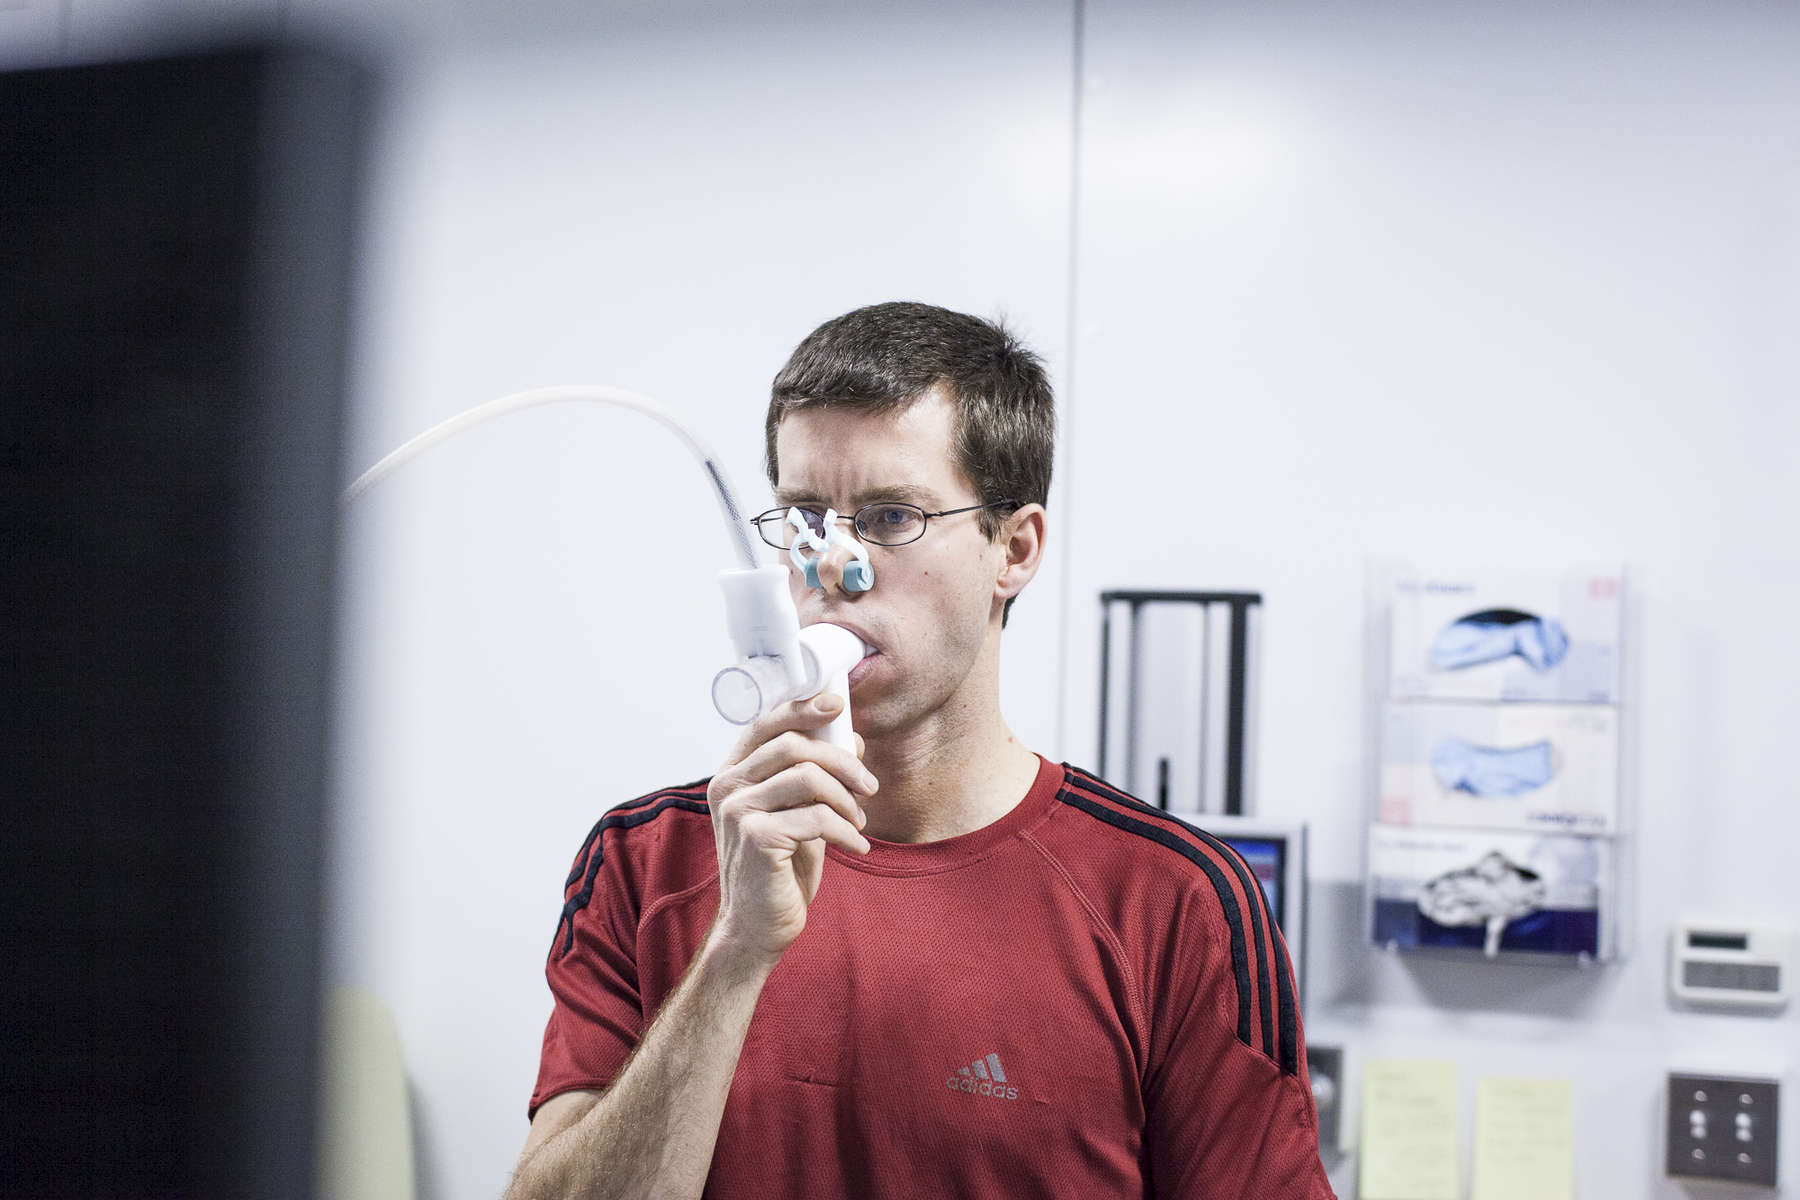 Writer Warren Cornwall does a lung test at Boston General Hospital before competing in a Triathlon. by Vermont photographer Judd Lamphere